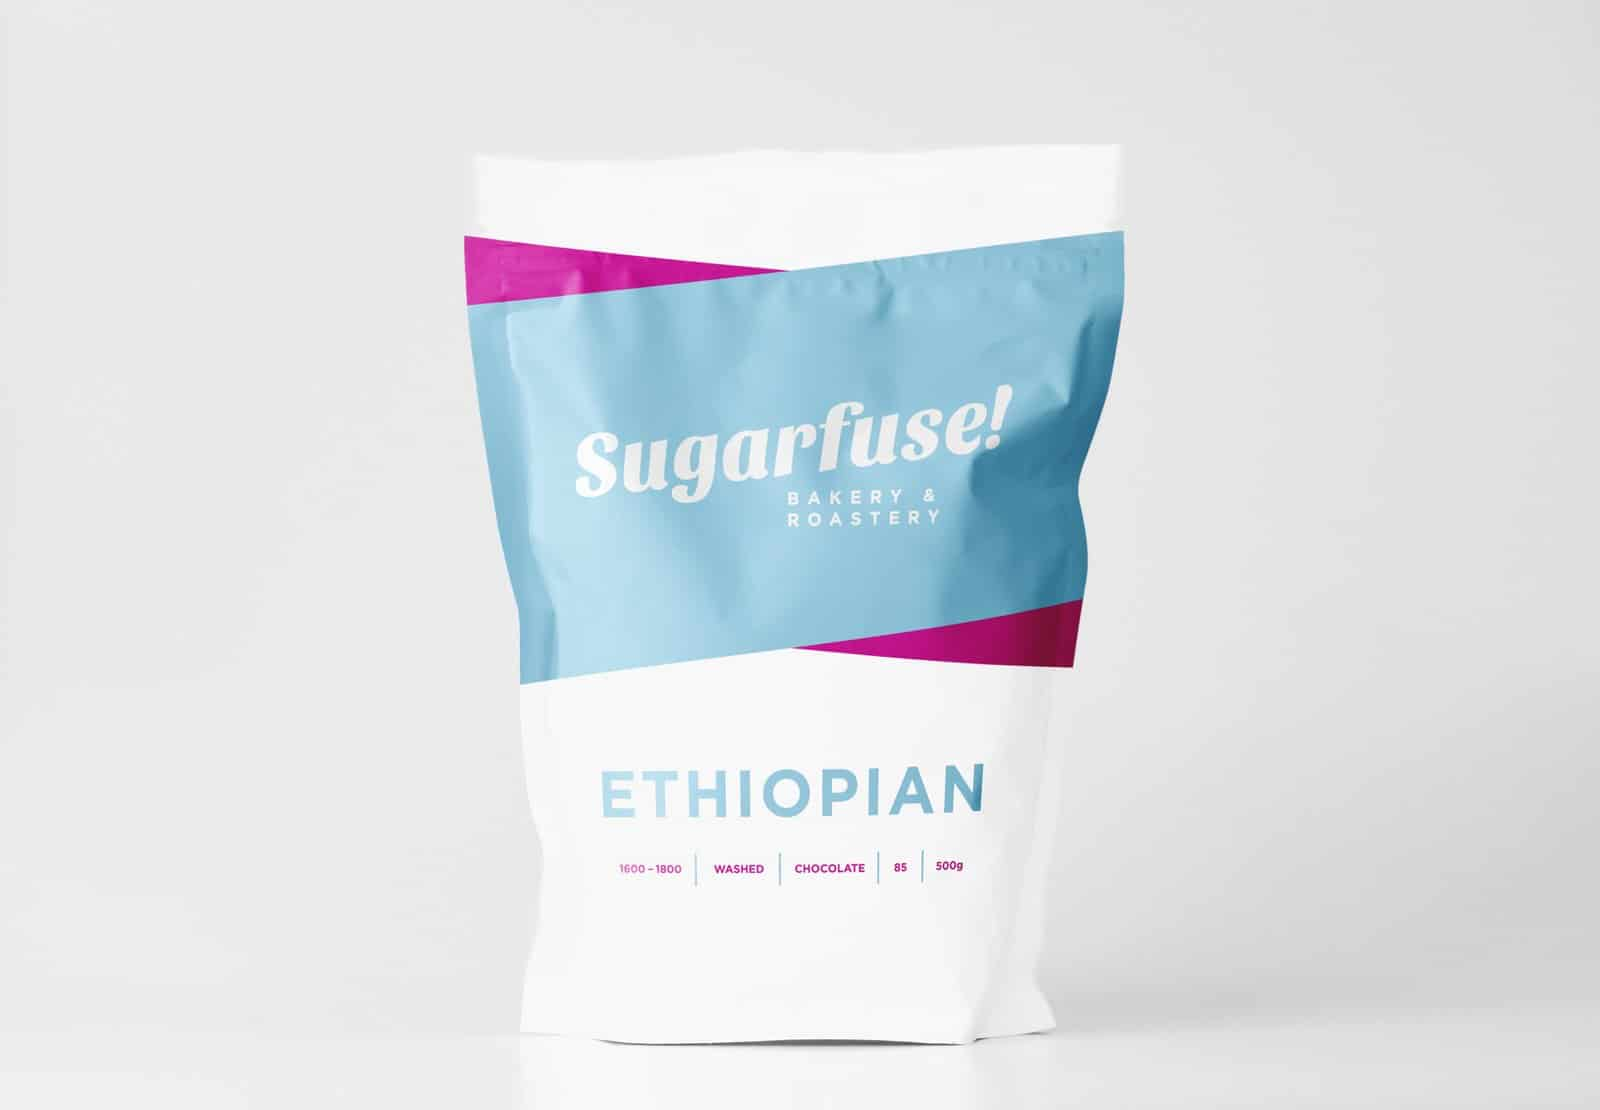 Sugarfuse! 14